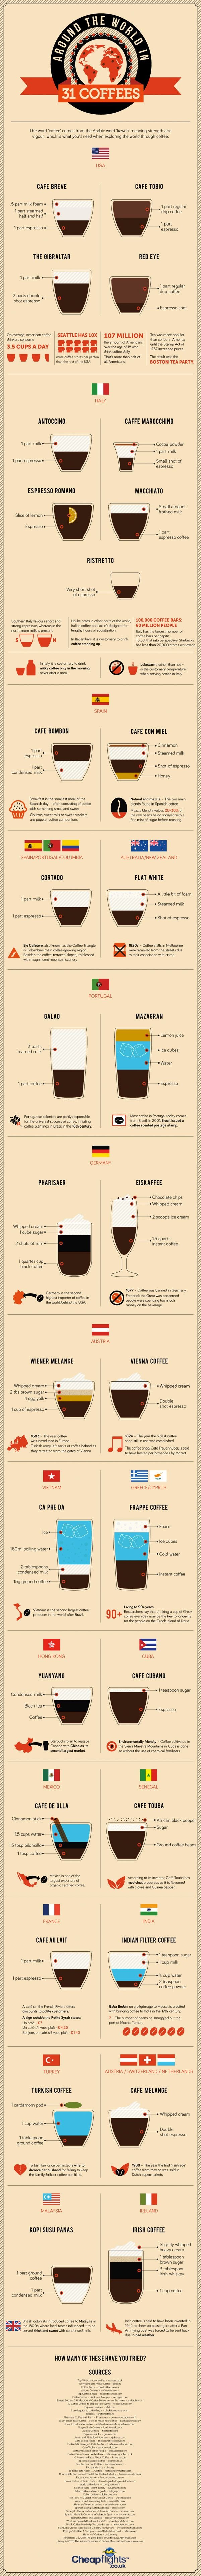 31-coffees-around-the-world